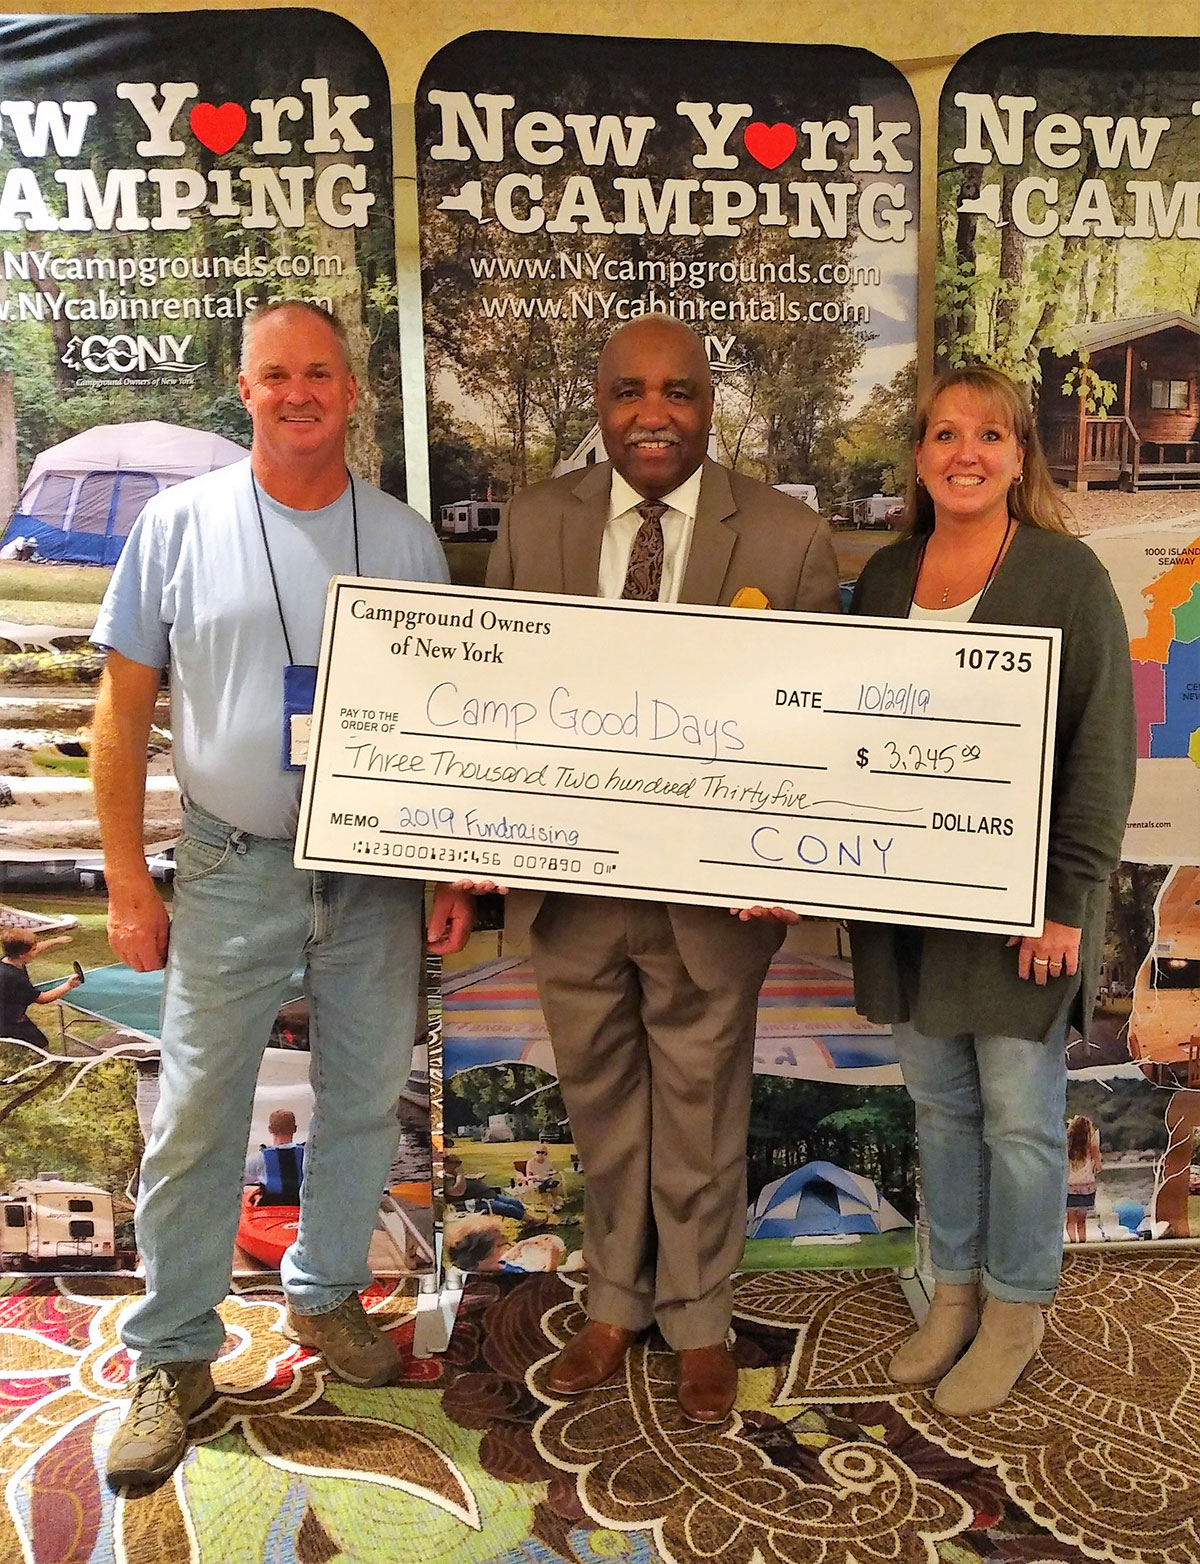 Campground owners pose with Camp Good Days rep and oversize check